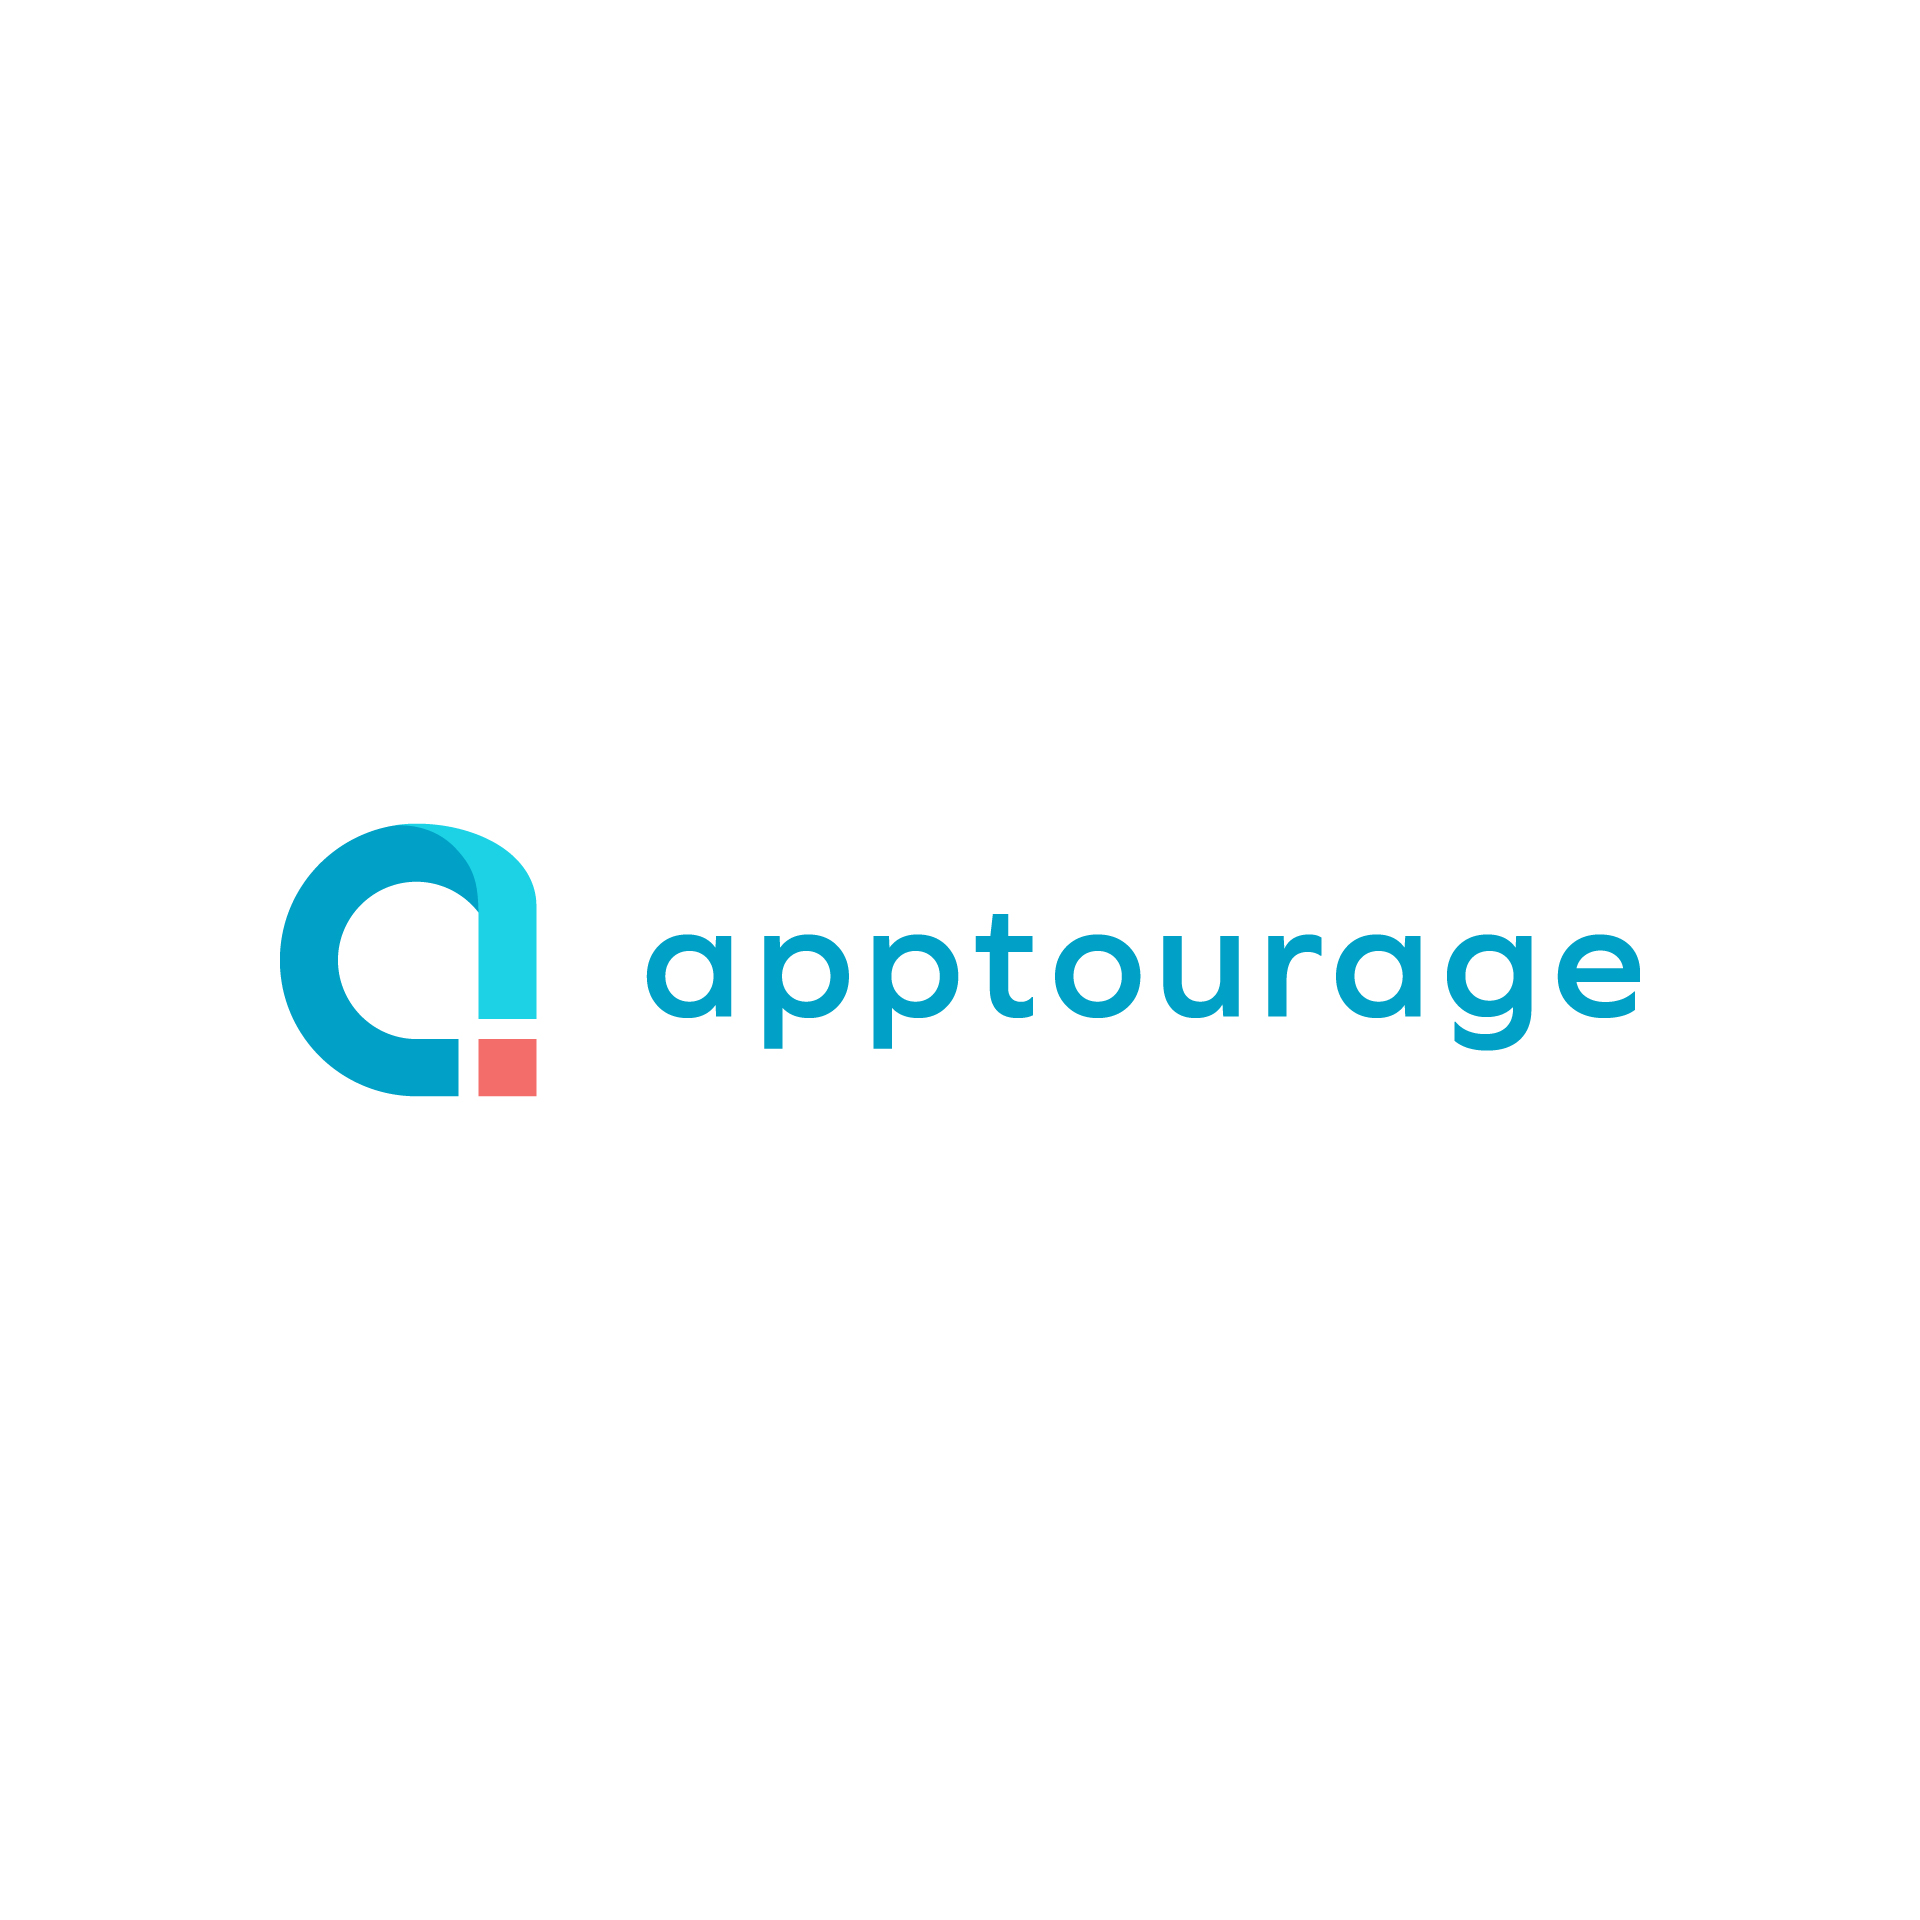 Final horizontal lockup for the Apptourage Logo